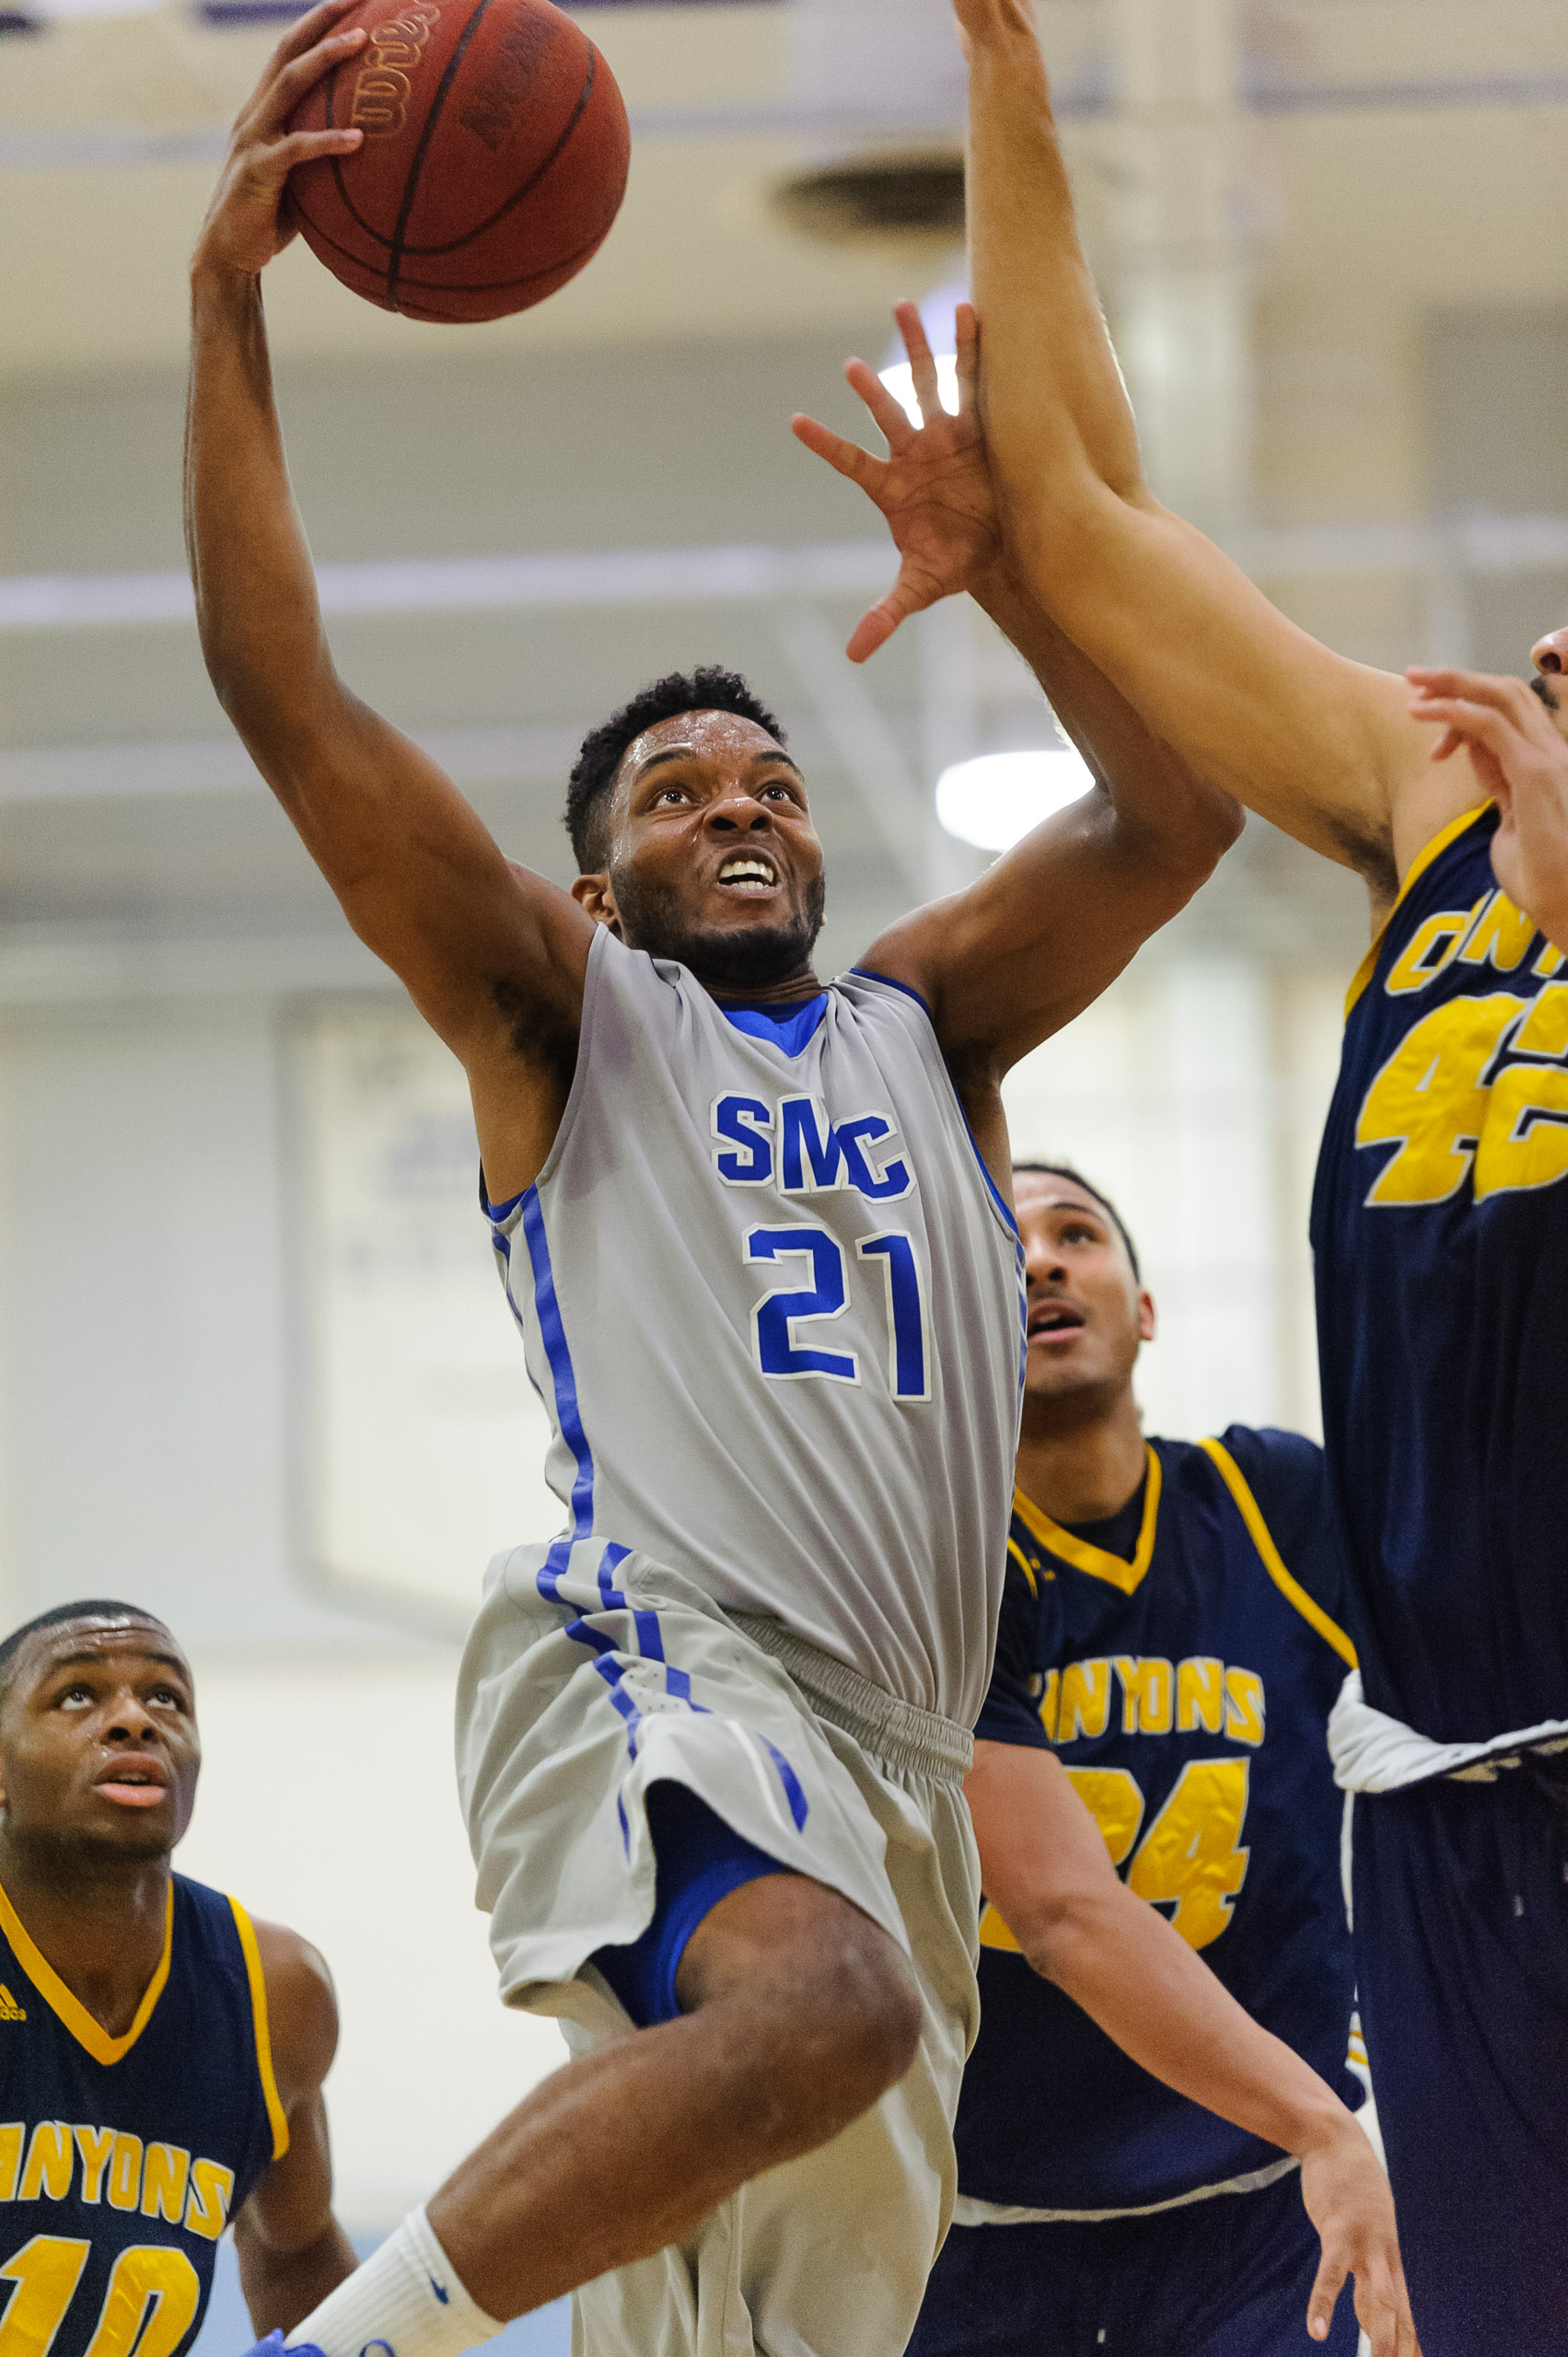 Forward Khalil Taylor (21) of Santa Monica College goes up for a contested layup as Philip Webb (42,Right) of the College of the Canyons attempts to block Taylor. The Santa Monica College Corsairs lose the game 74-72 to the College of the Canyons Cougars. The game was held at the SMC Pavilion at the Santa Monica College Main Campus in Santa Monica, Calif.. February 10, 2018. (Photo by: Justin Han/Corsair Staff)